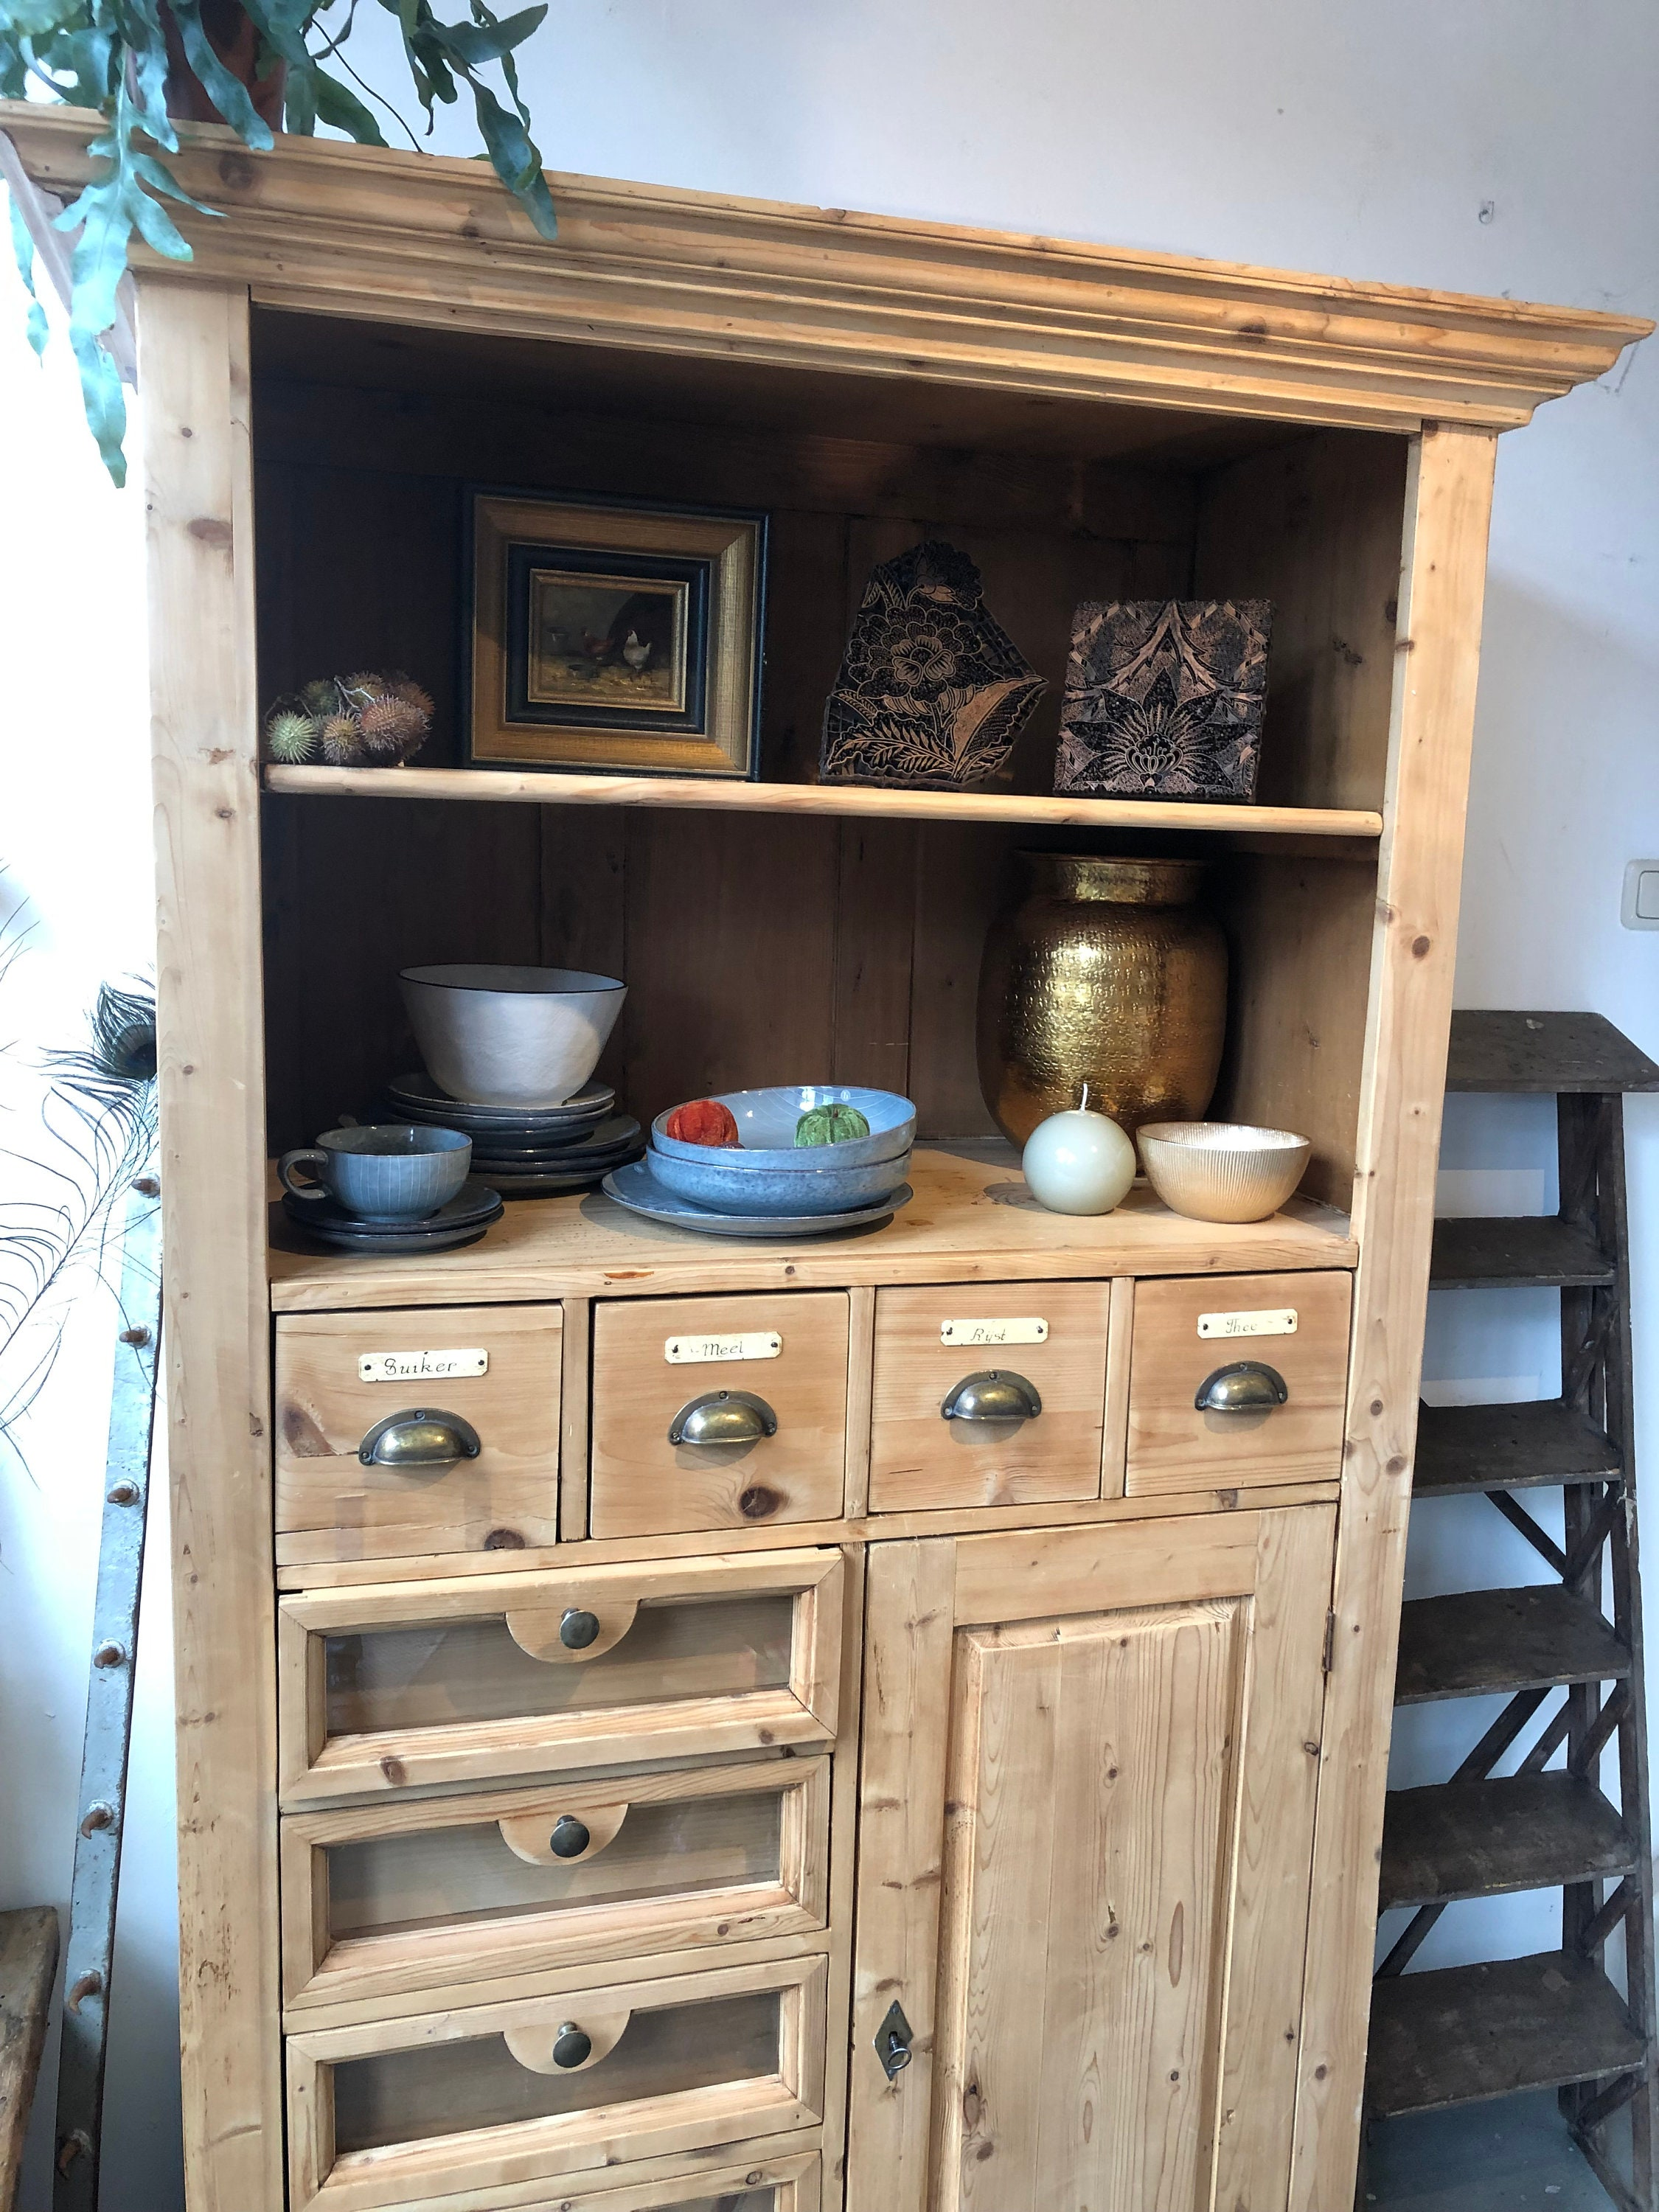 Used, Old wooden buffet cabinet with drawers for sale